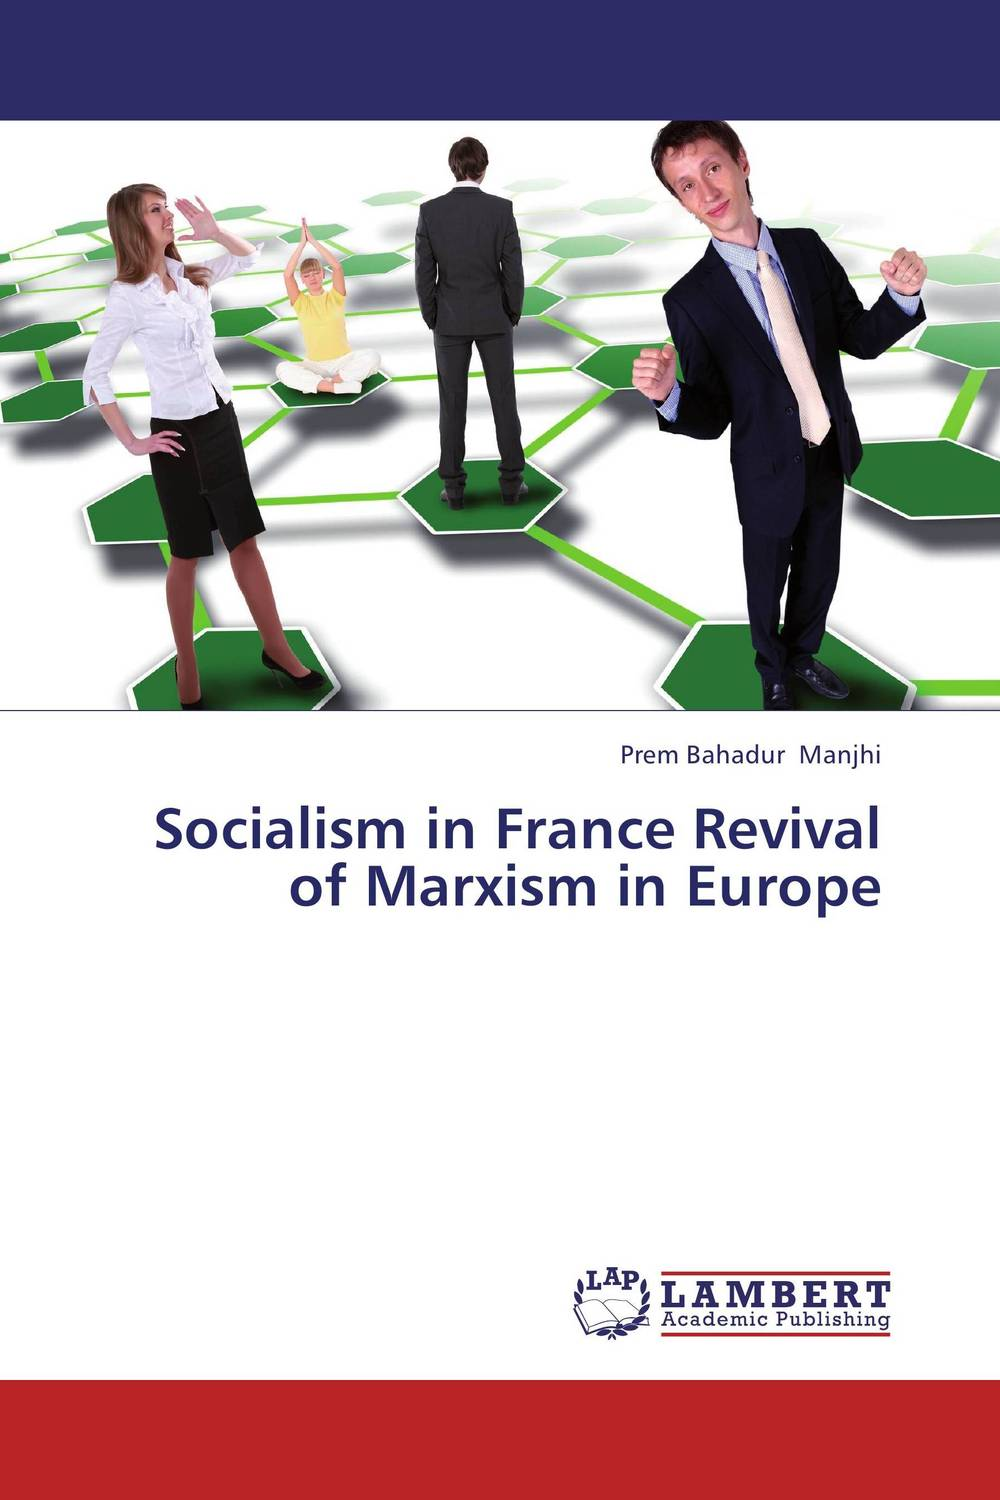 Socialism in France Revival of Marxism in Europe